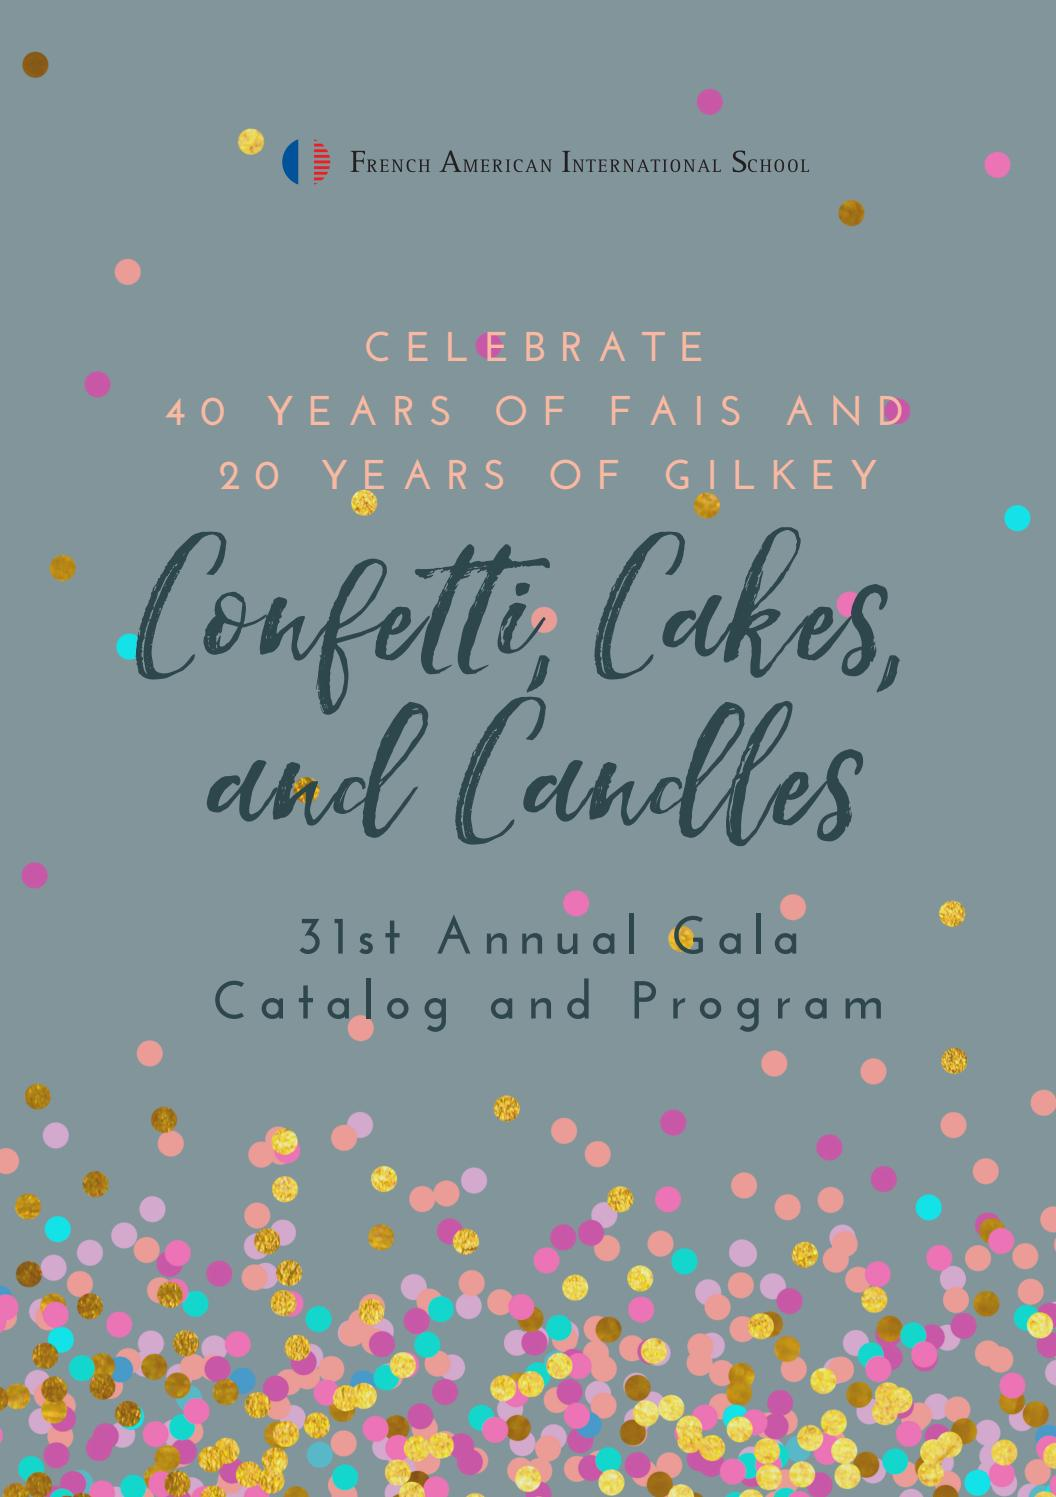 Confetti, Cakes, and Candles -- FAIS 31st Annual Gala by French